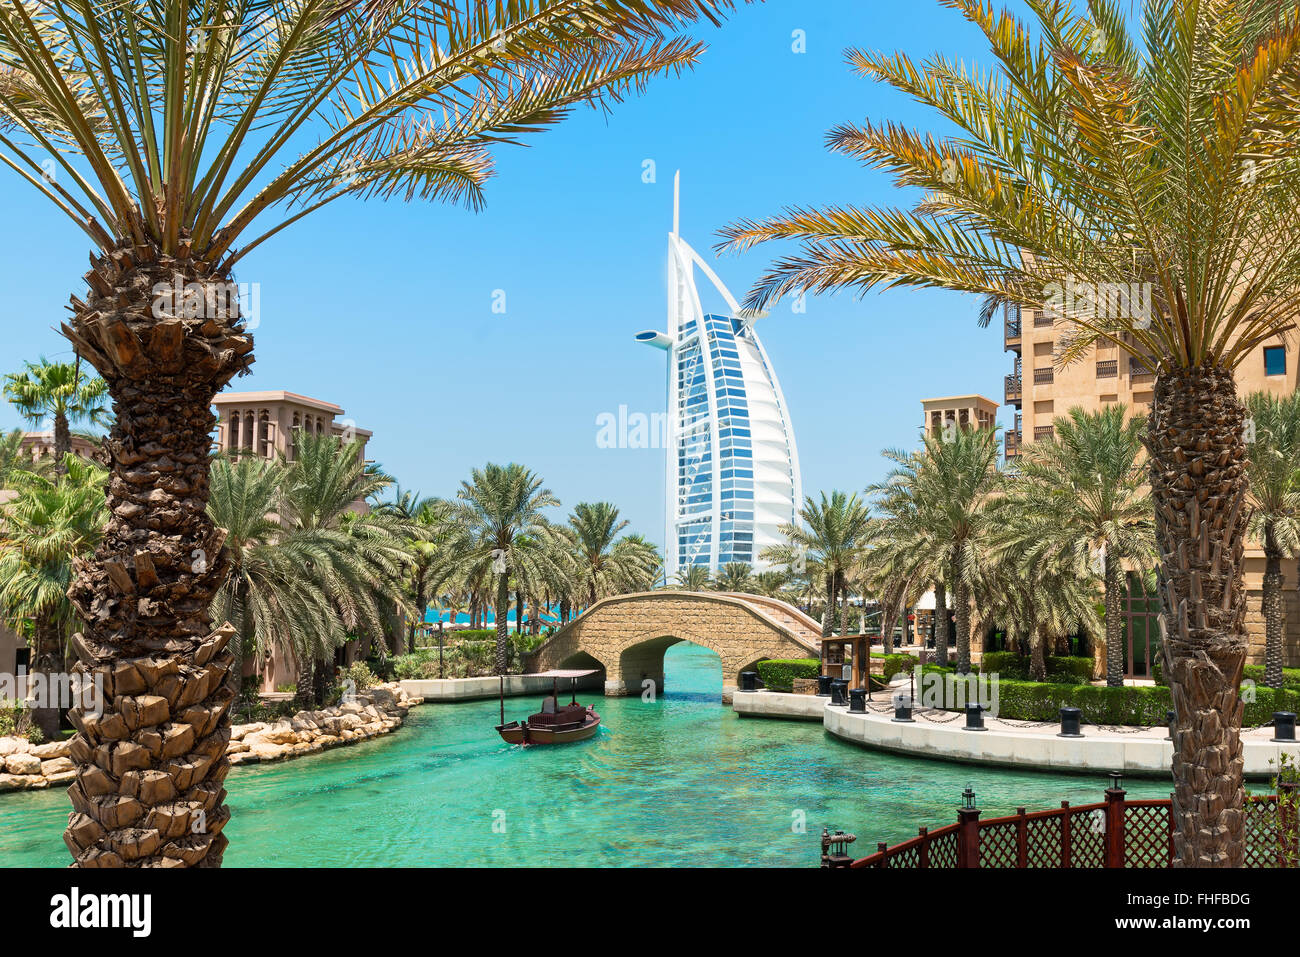 A general view of the world's first seven stars luxury hotel Burj Al Arab 'Tower of the Arabs', Madinat - Stock Image